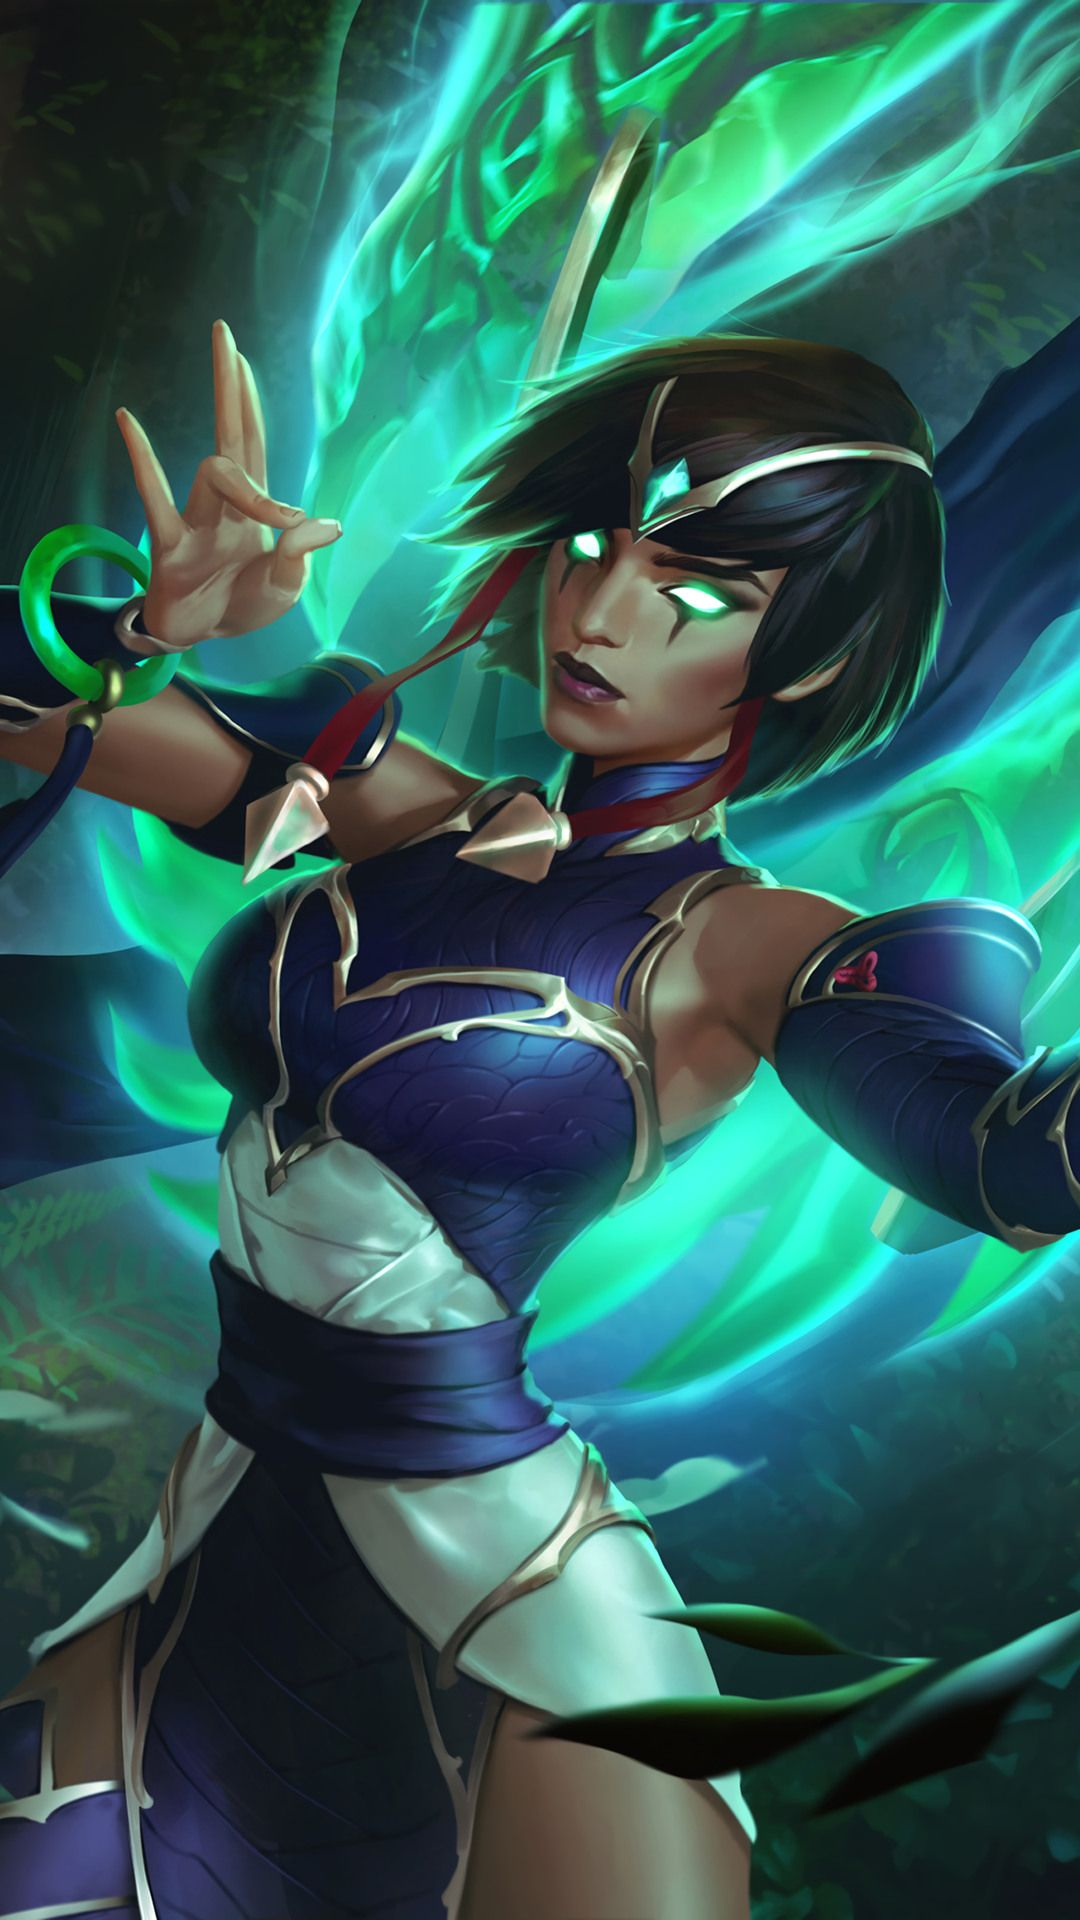 Karma Lor In 2021 Lol League Of Legends Champions League Of Legends League Of Legends Characters